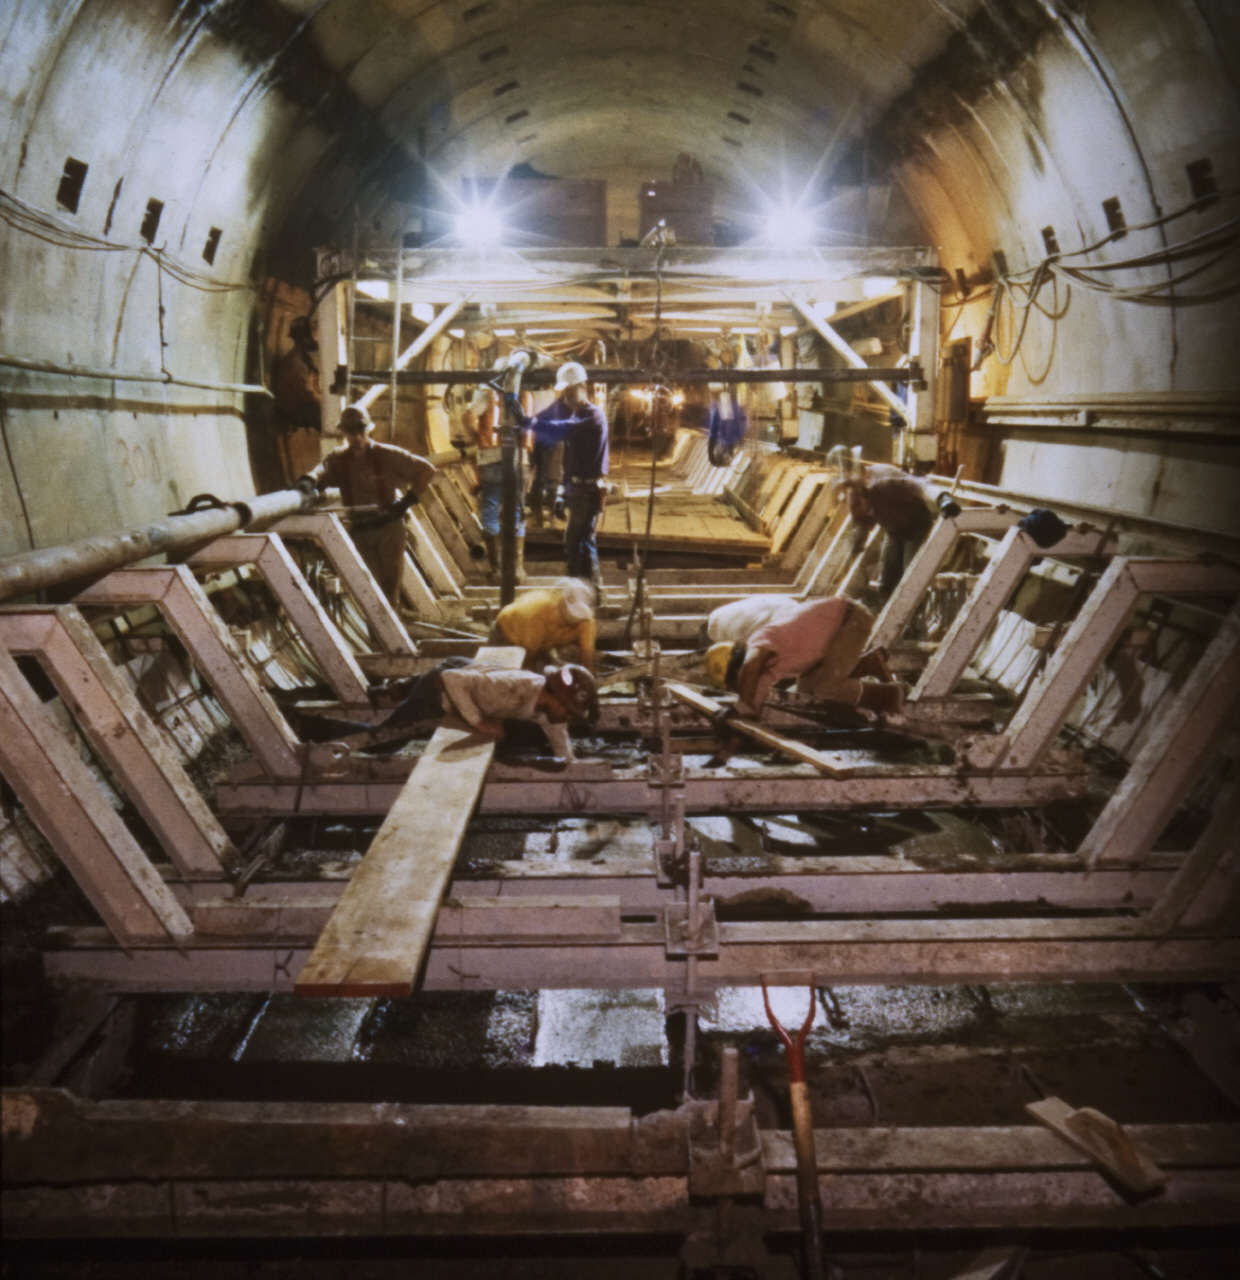 Construction of the Red Line in the mid-1990s. Photo: Metro Transportation Library's Flickr stream.